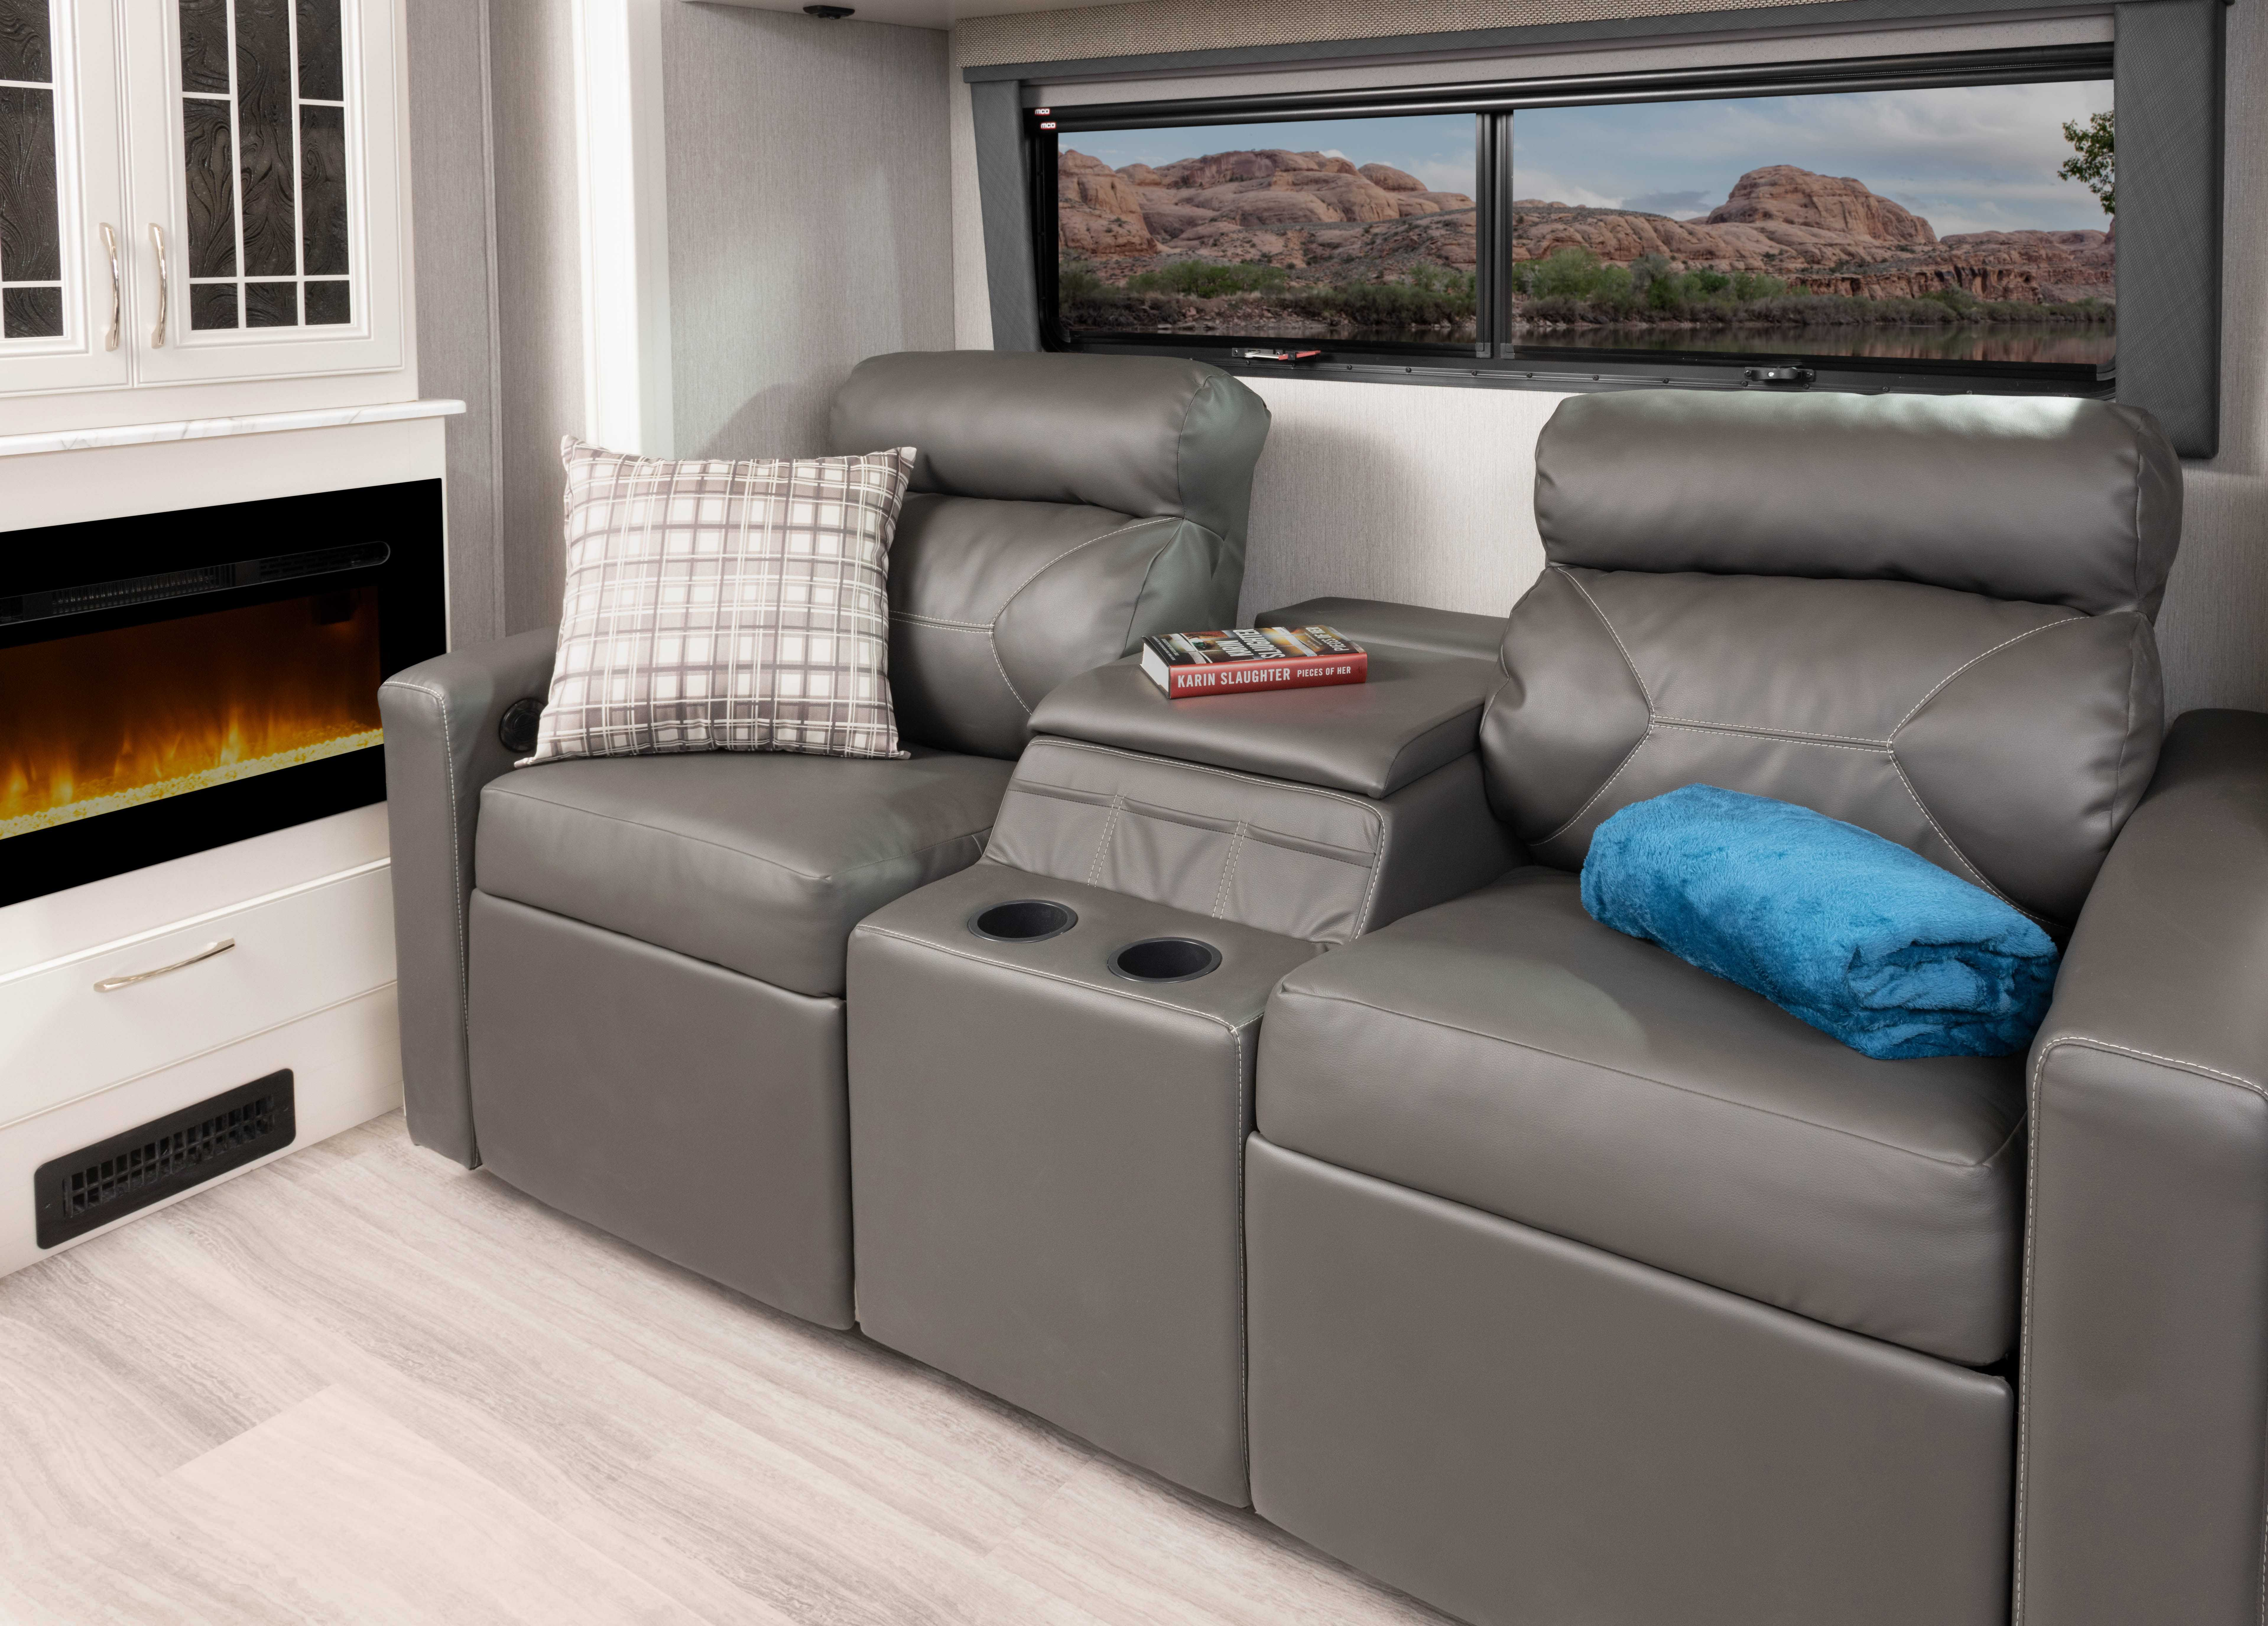 2 theatreseat Frontier34 GT Alloy Heritage1434 closed MY22